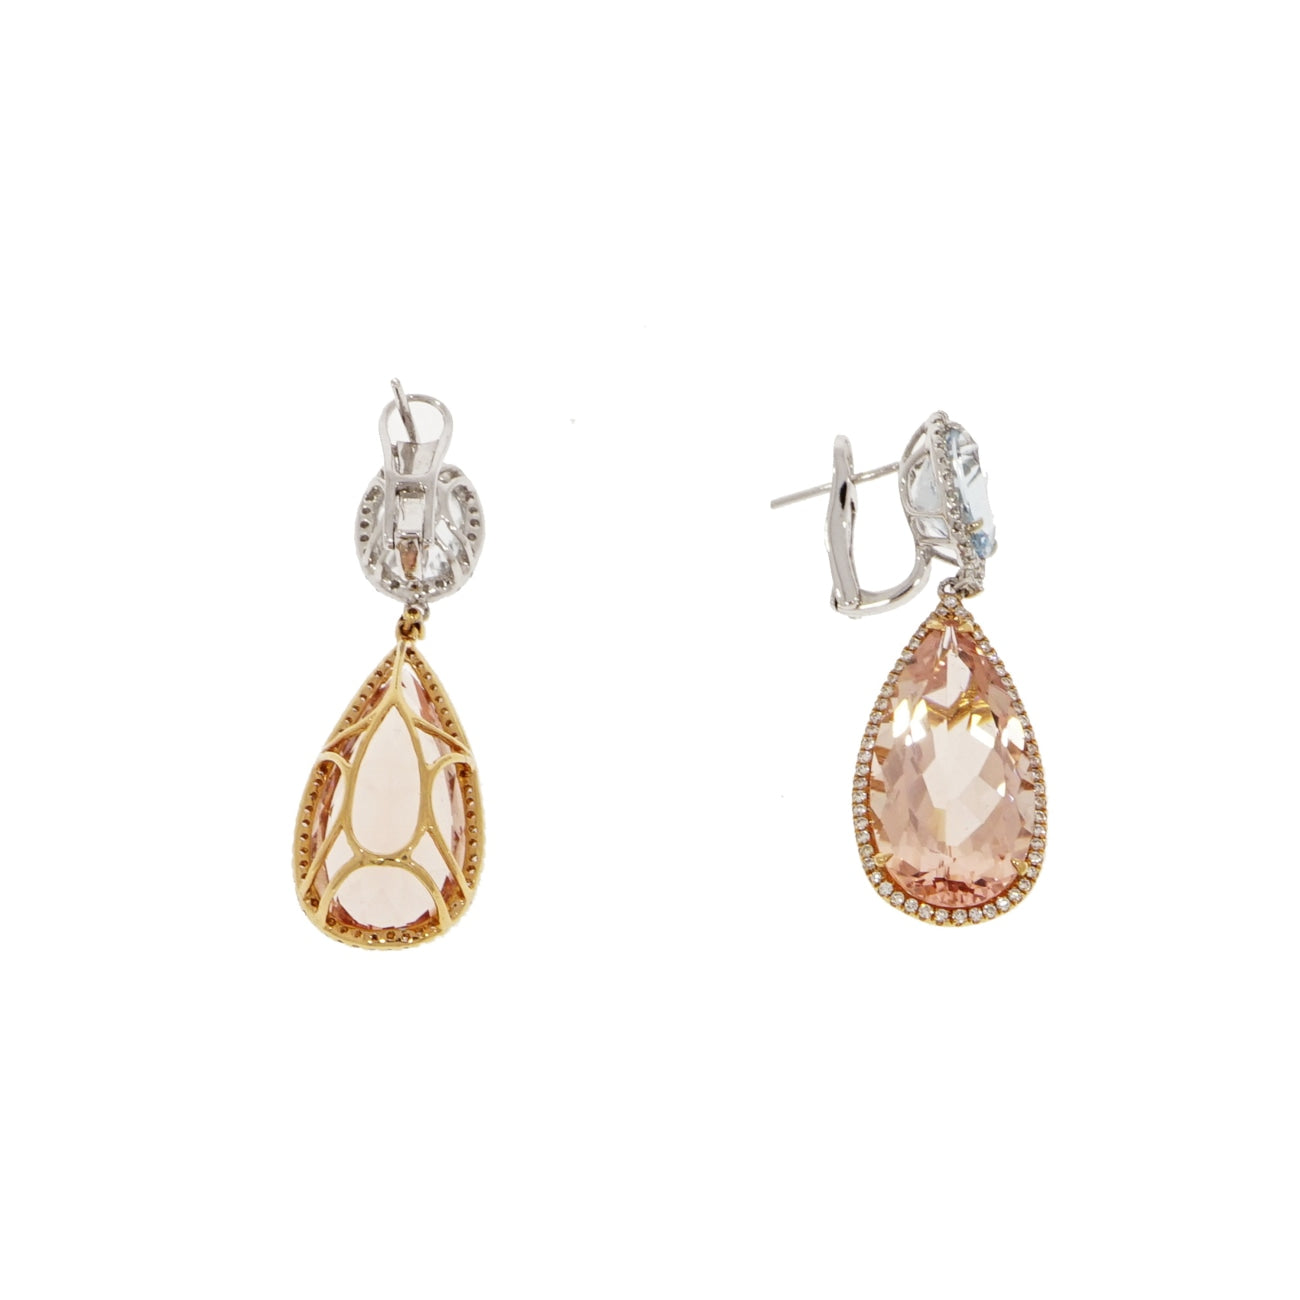 Manfredi Jewels - Morganite & Aquamarine Drop Earrings | Manfredi Jewels